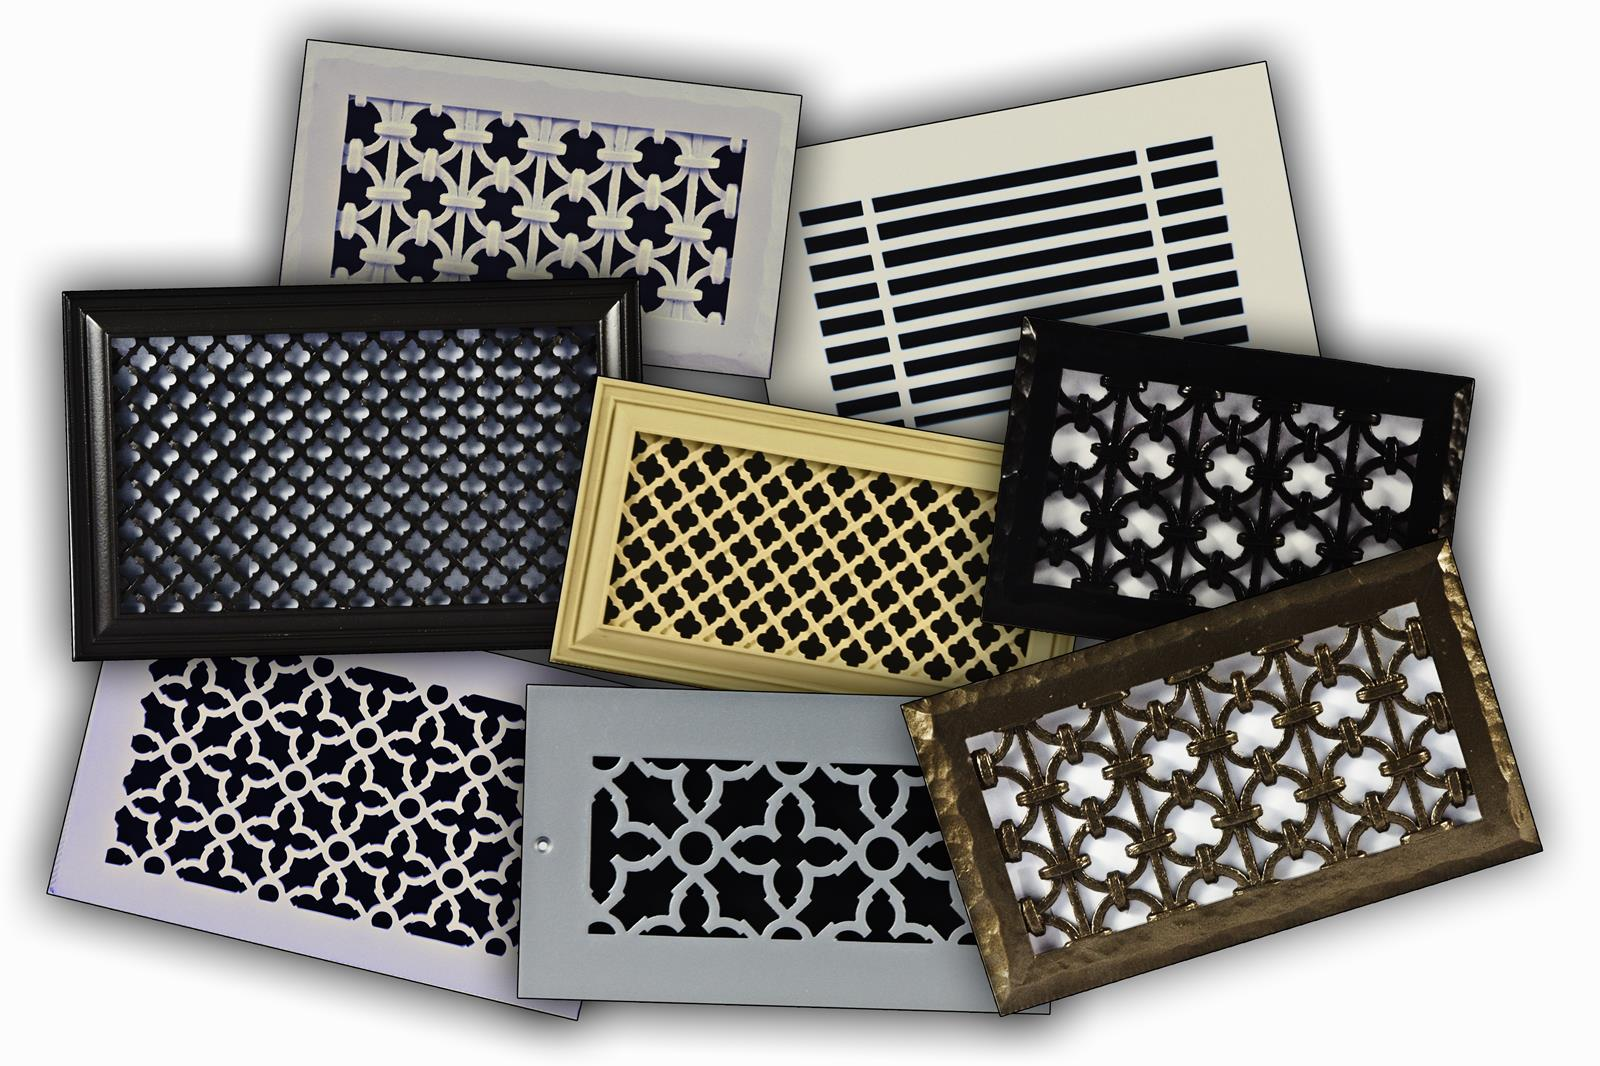 #857746 Pin Ceiling Duct Vent Covers On Pinterest Best 3573 Heating Duct Covers photos with 1600x1066 px on helpvideos.info - Air Conditioners, Air Coolers and more